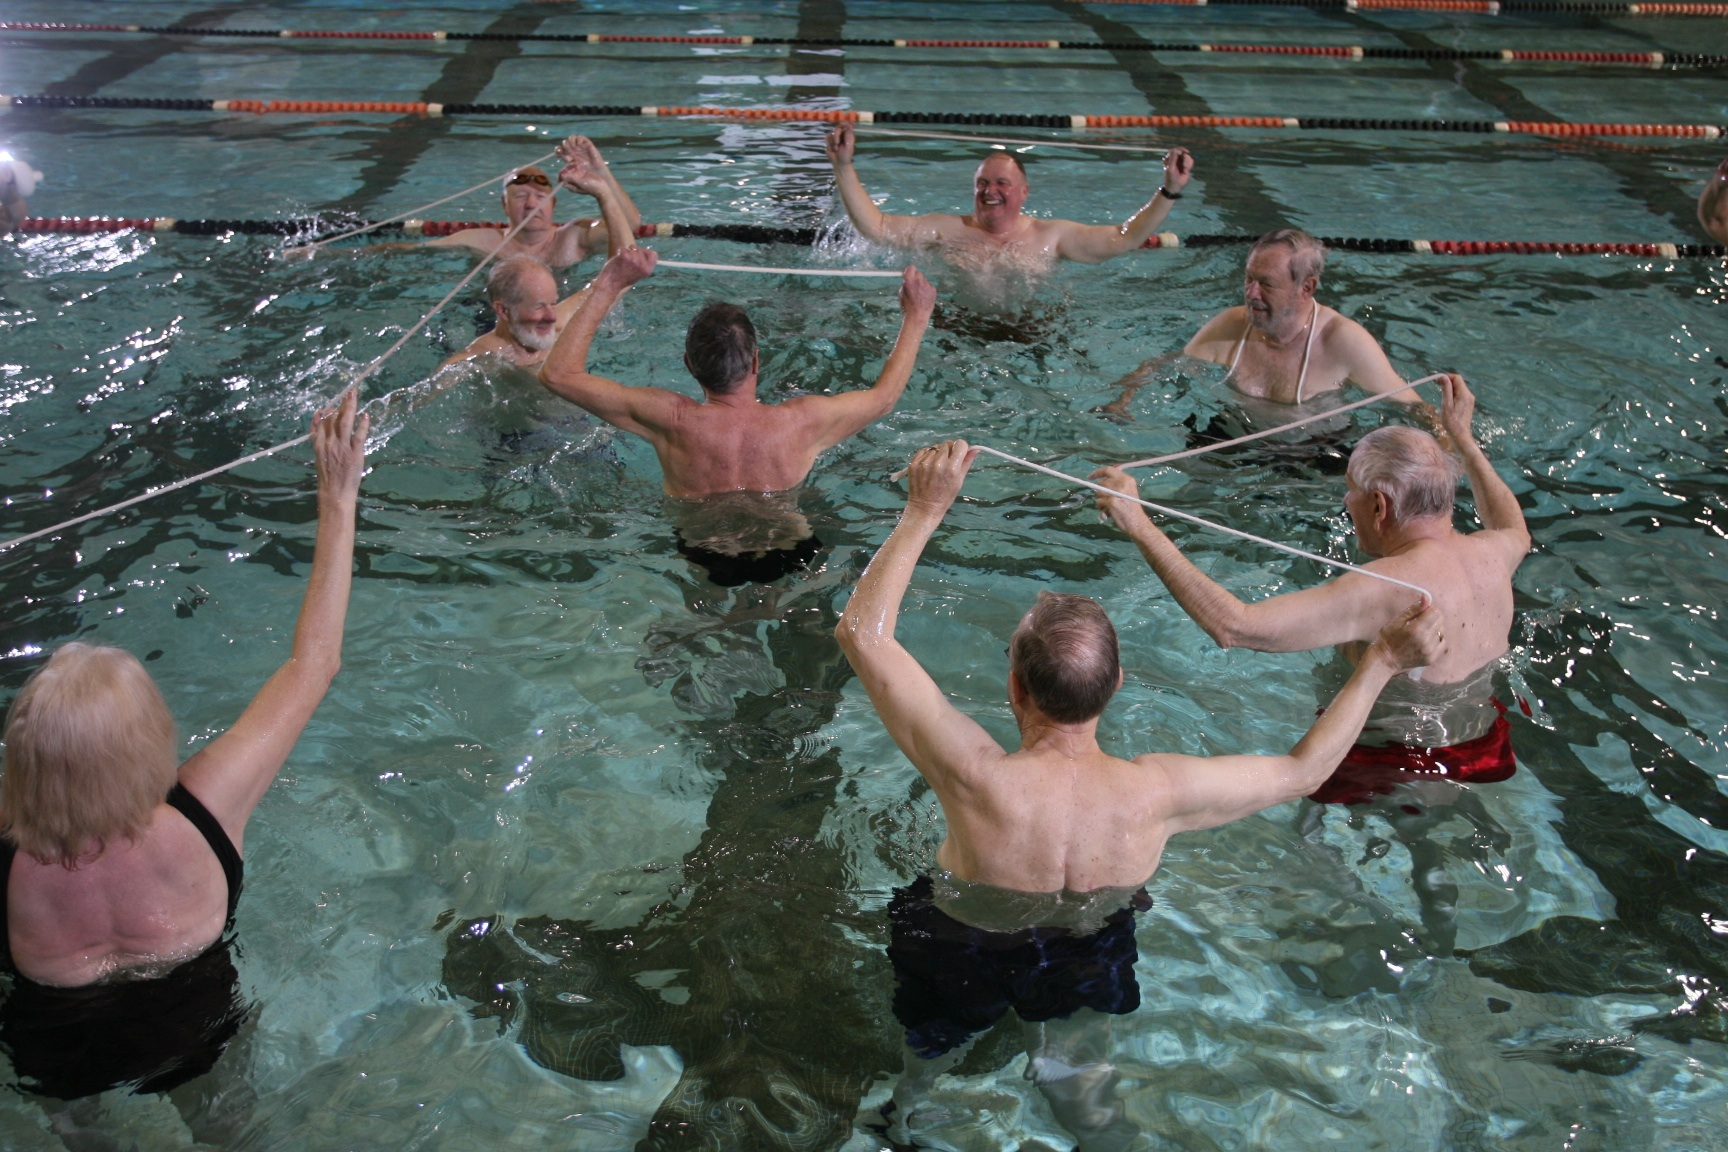 bunch of people in pool holding short pieces of rope in the air